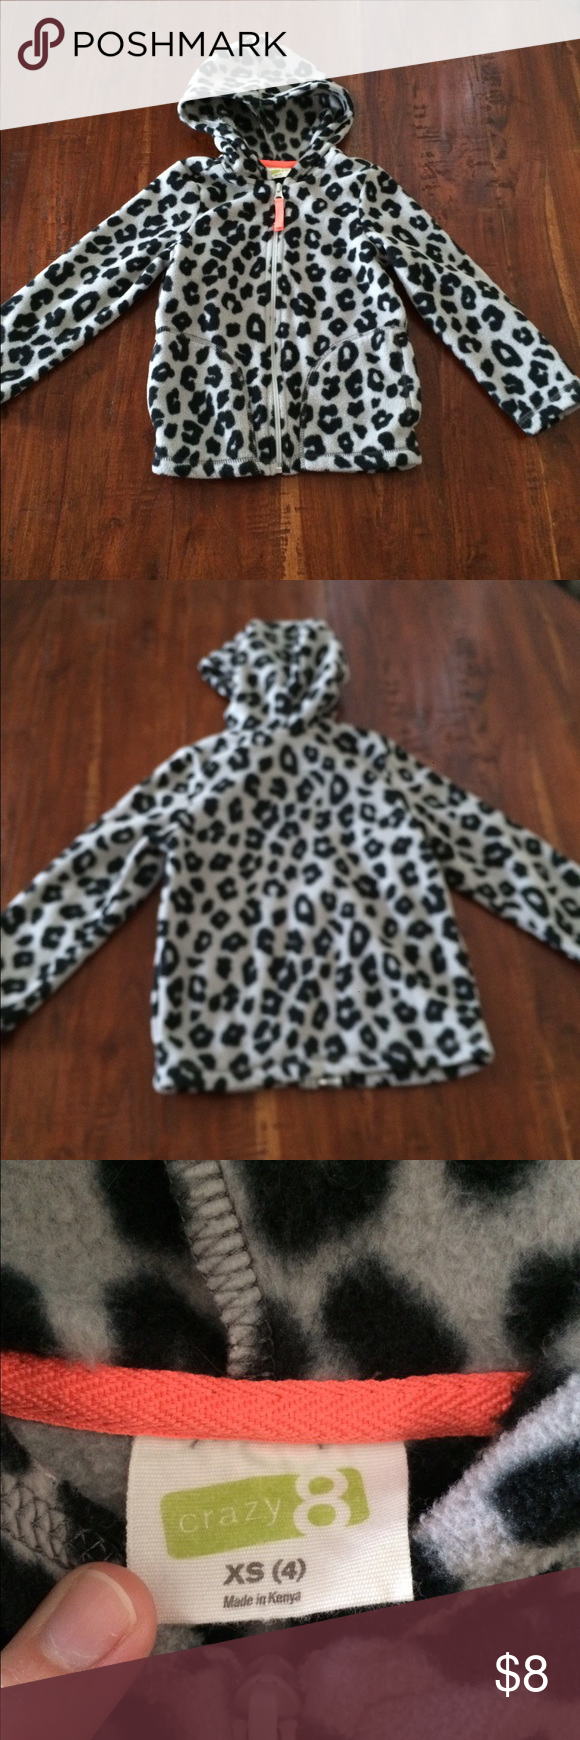 Girls crazy 8 leopard print fleece jacket sweater Girls crazy 8 leopard print fleece jacket. Size xs (4). In great condition. Smoke free home. crazy 8 Jackets & Coats